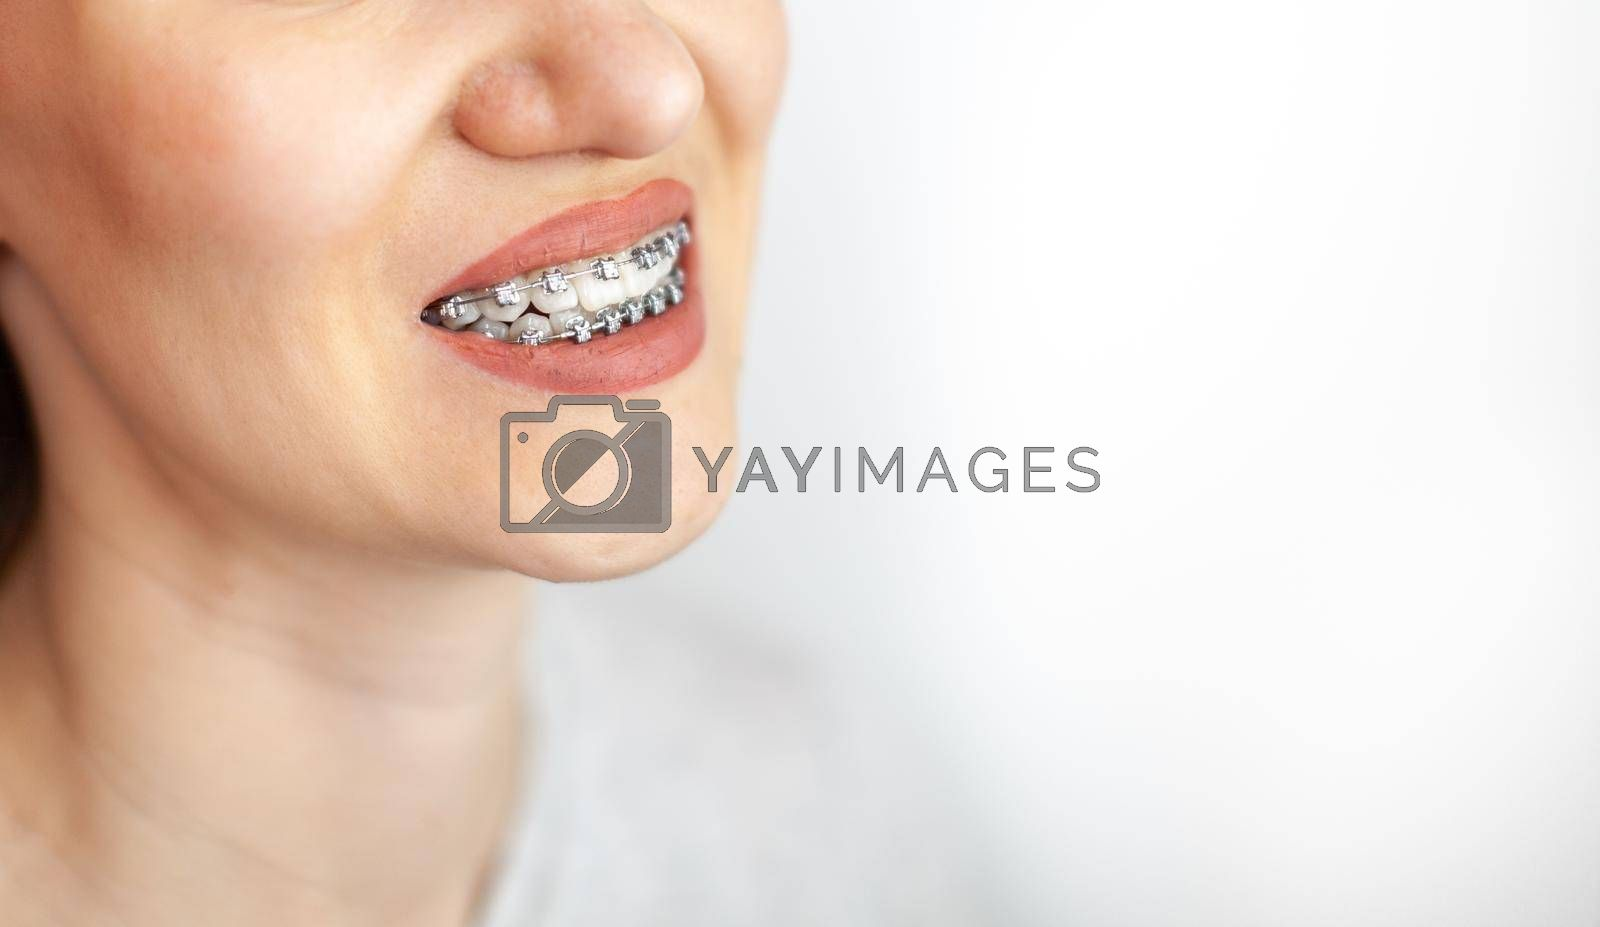 The smile of a young girl with braces on her white teeth. Teeth straightening. Malocclusion. Dental care.